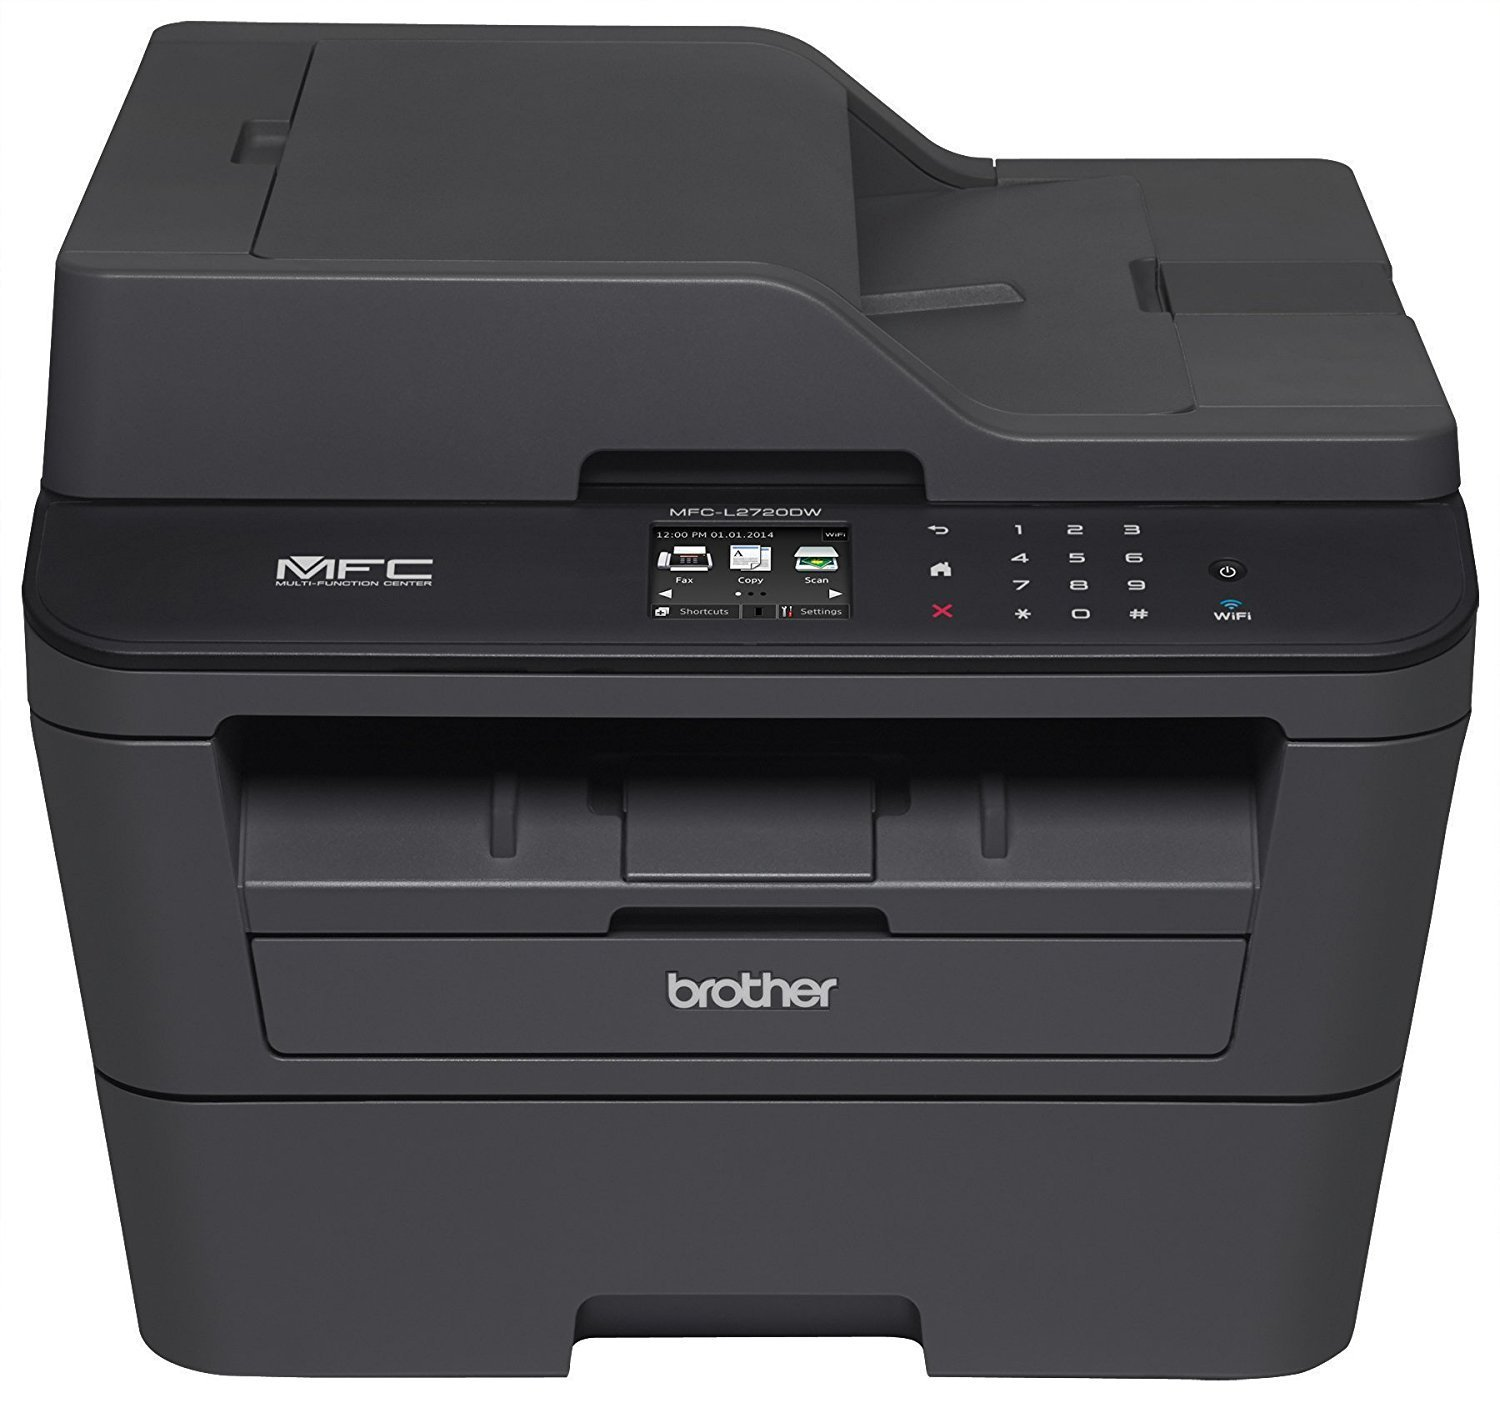 BROTHER MFC-L2720DWR DOWNLOAD DRIVERS